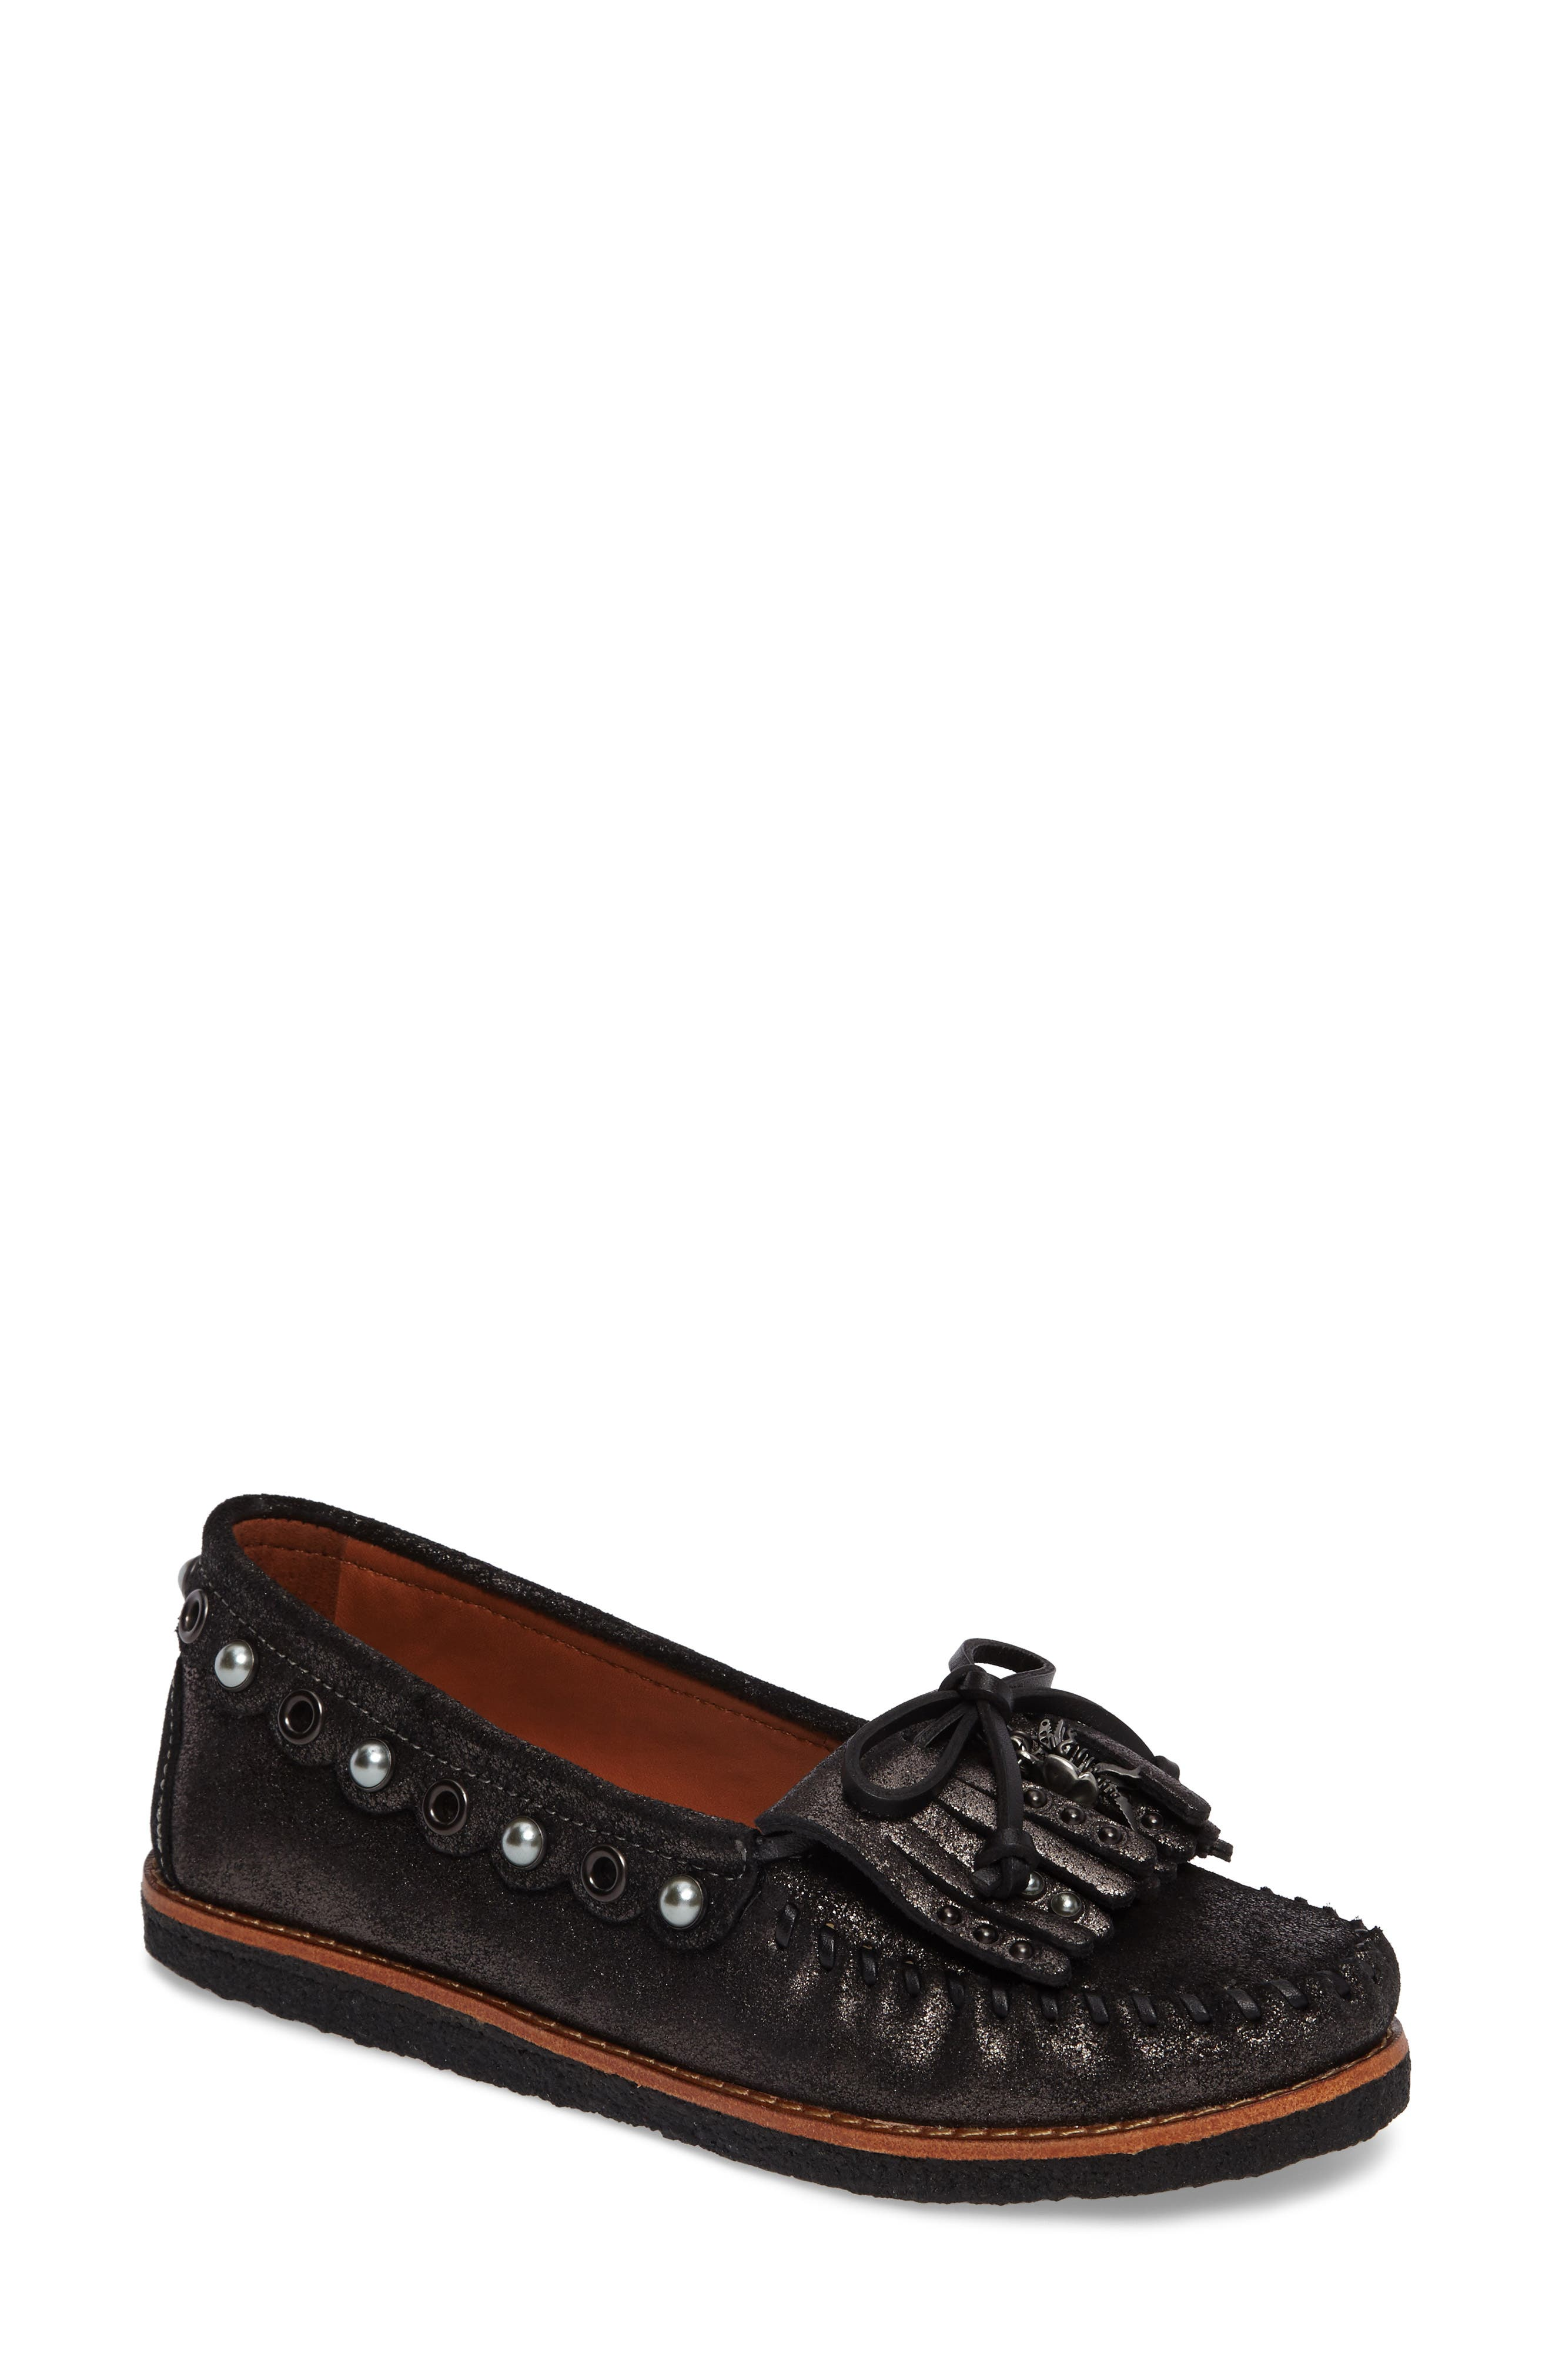 Roccasin Flat,                             Main thumbnail 1, color,                             Anthracite Suede